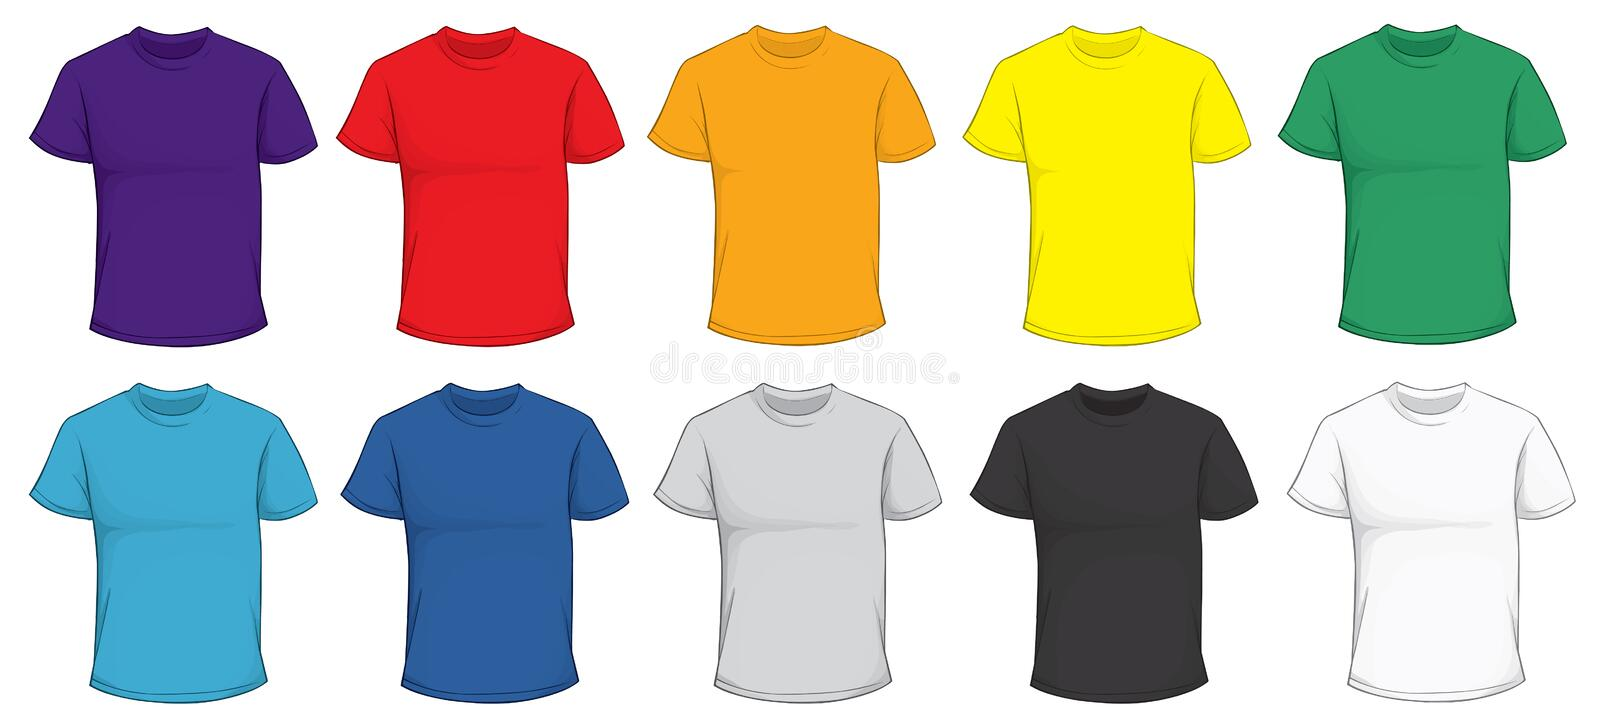 Colorful T-Shirt Template vector illustration